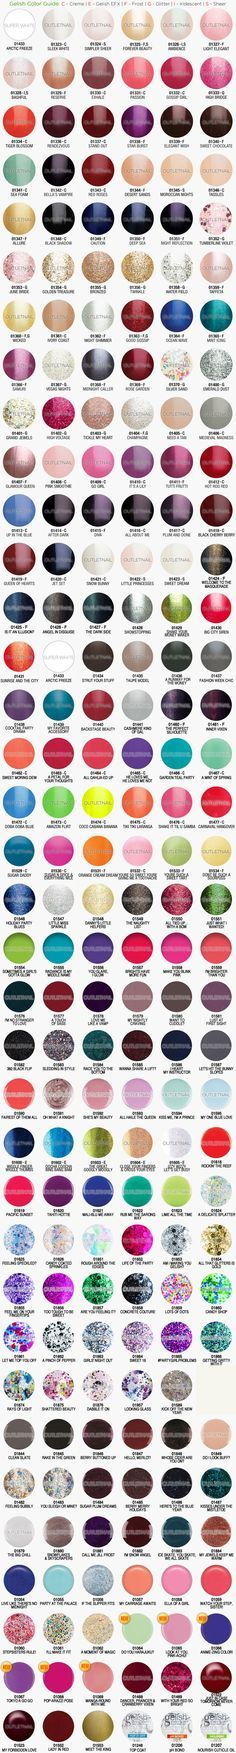 outletnail items - Get great deals on Gelish Harmony Color Chart items on eBay Stores!